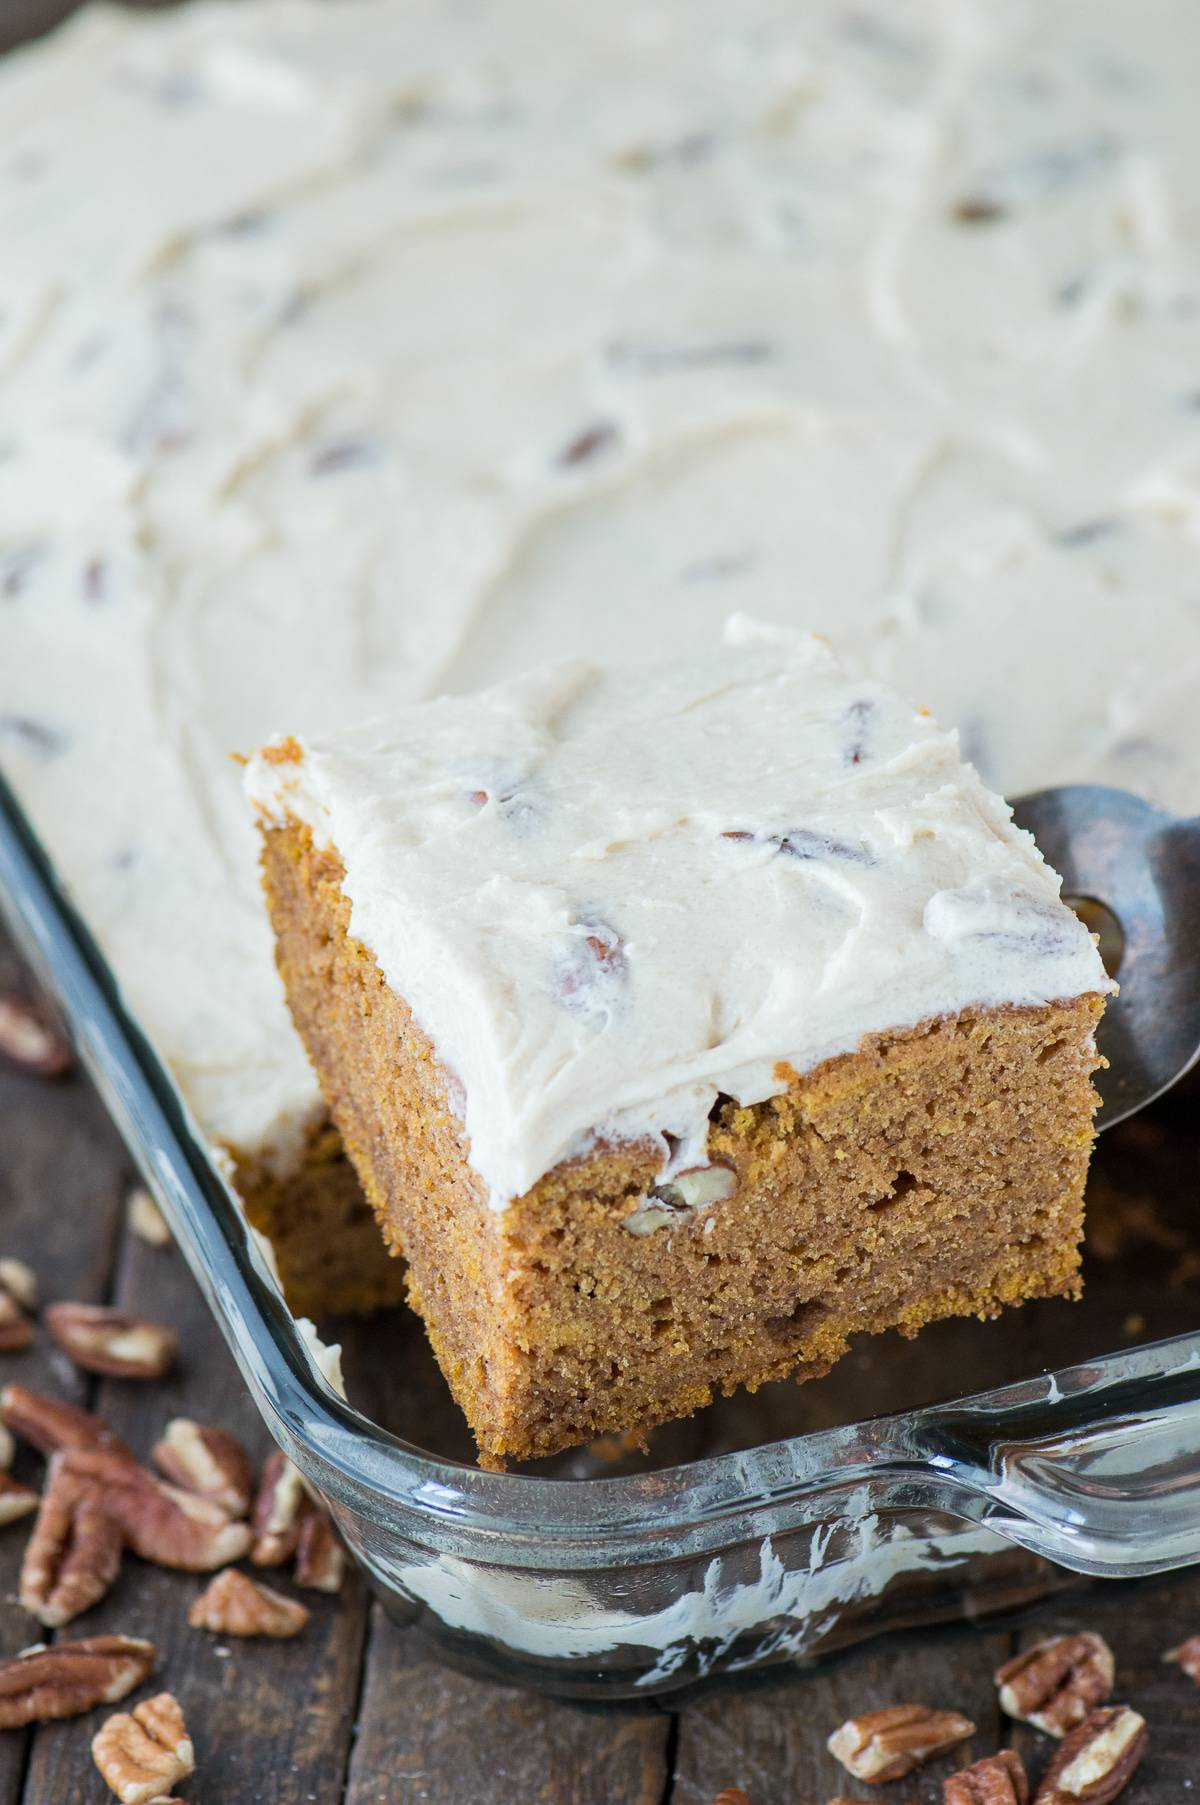 Easy to make pumpkin sheet cake made in a 9x13 inch pan with homemade butter pecan frosting!